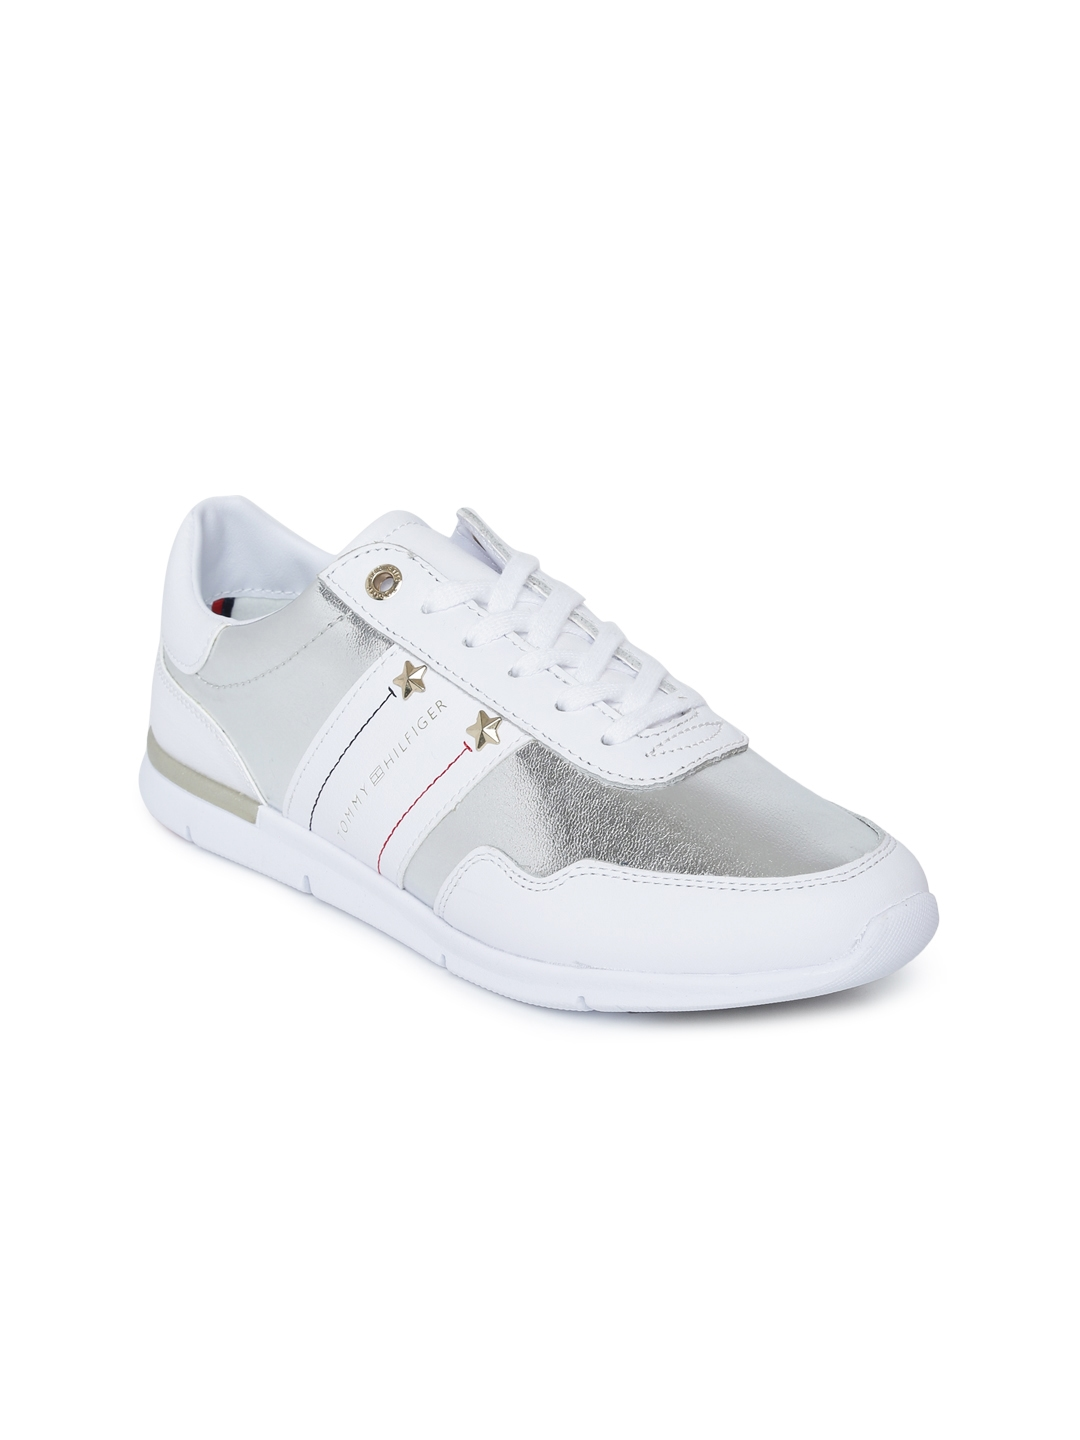 4d5a4b6b Tommy Hilfiger Women White & Silver-Toned Colourblocked Leather Sneakers